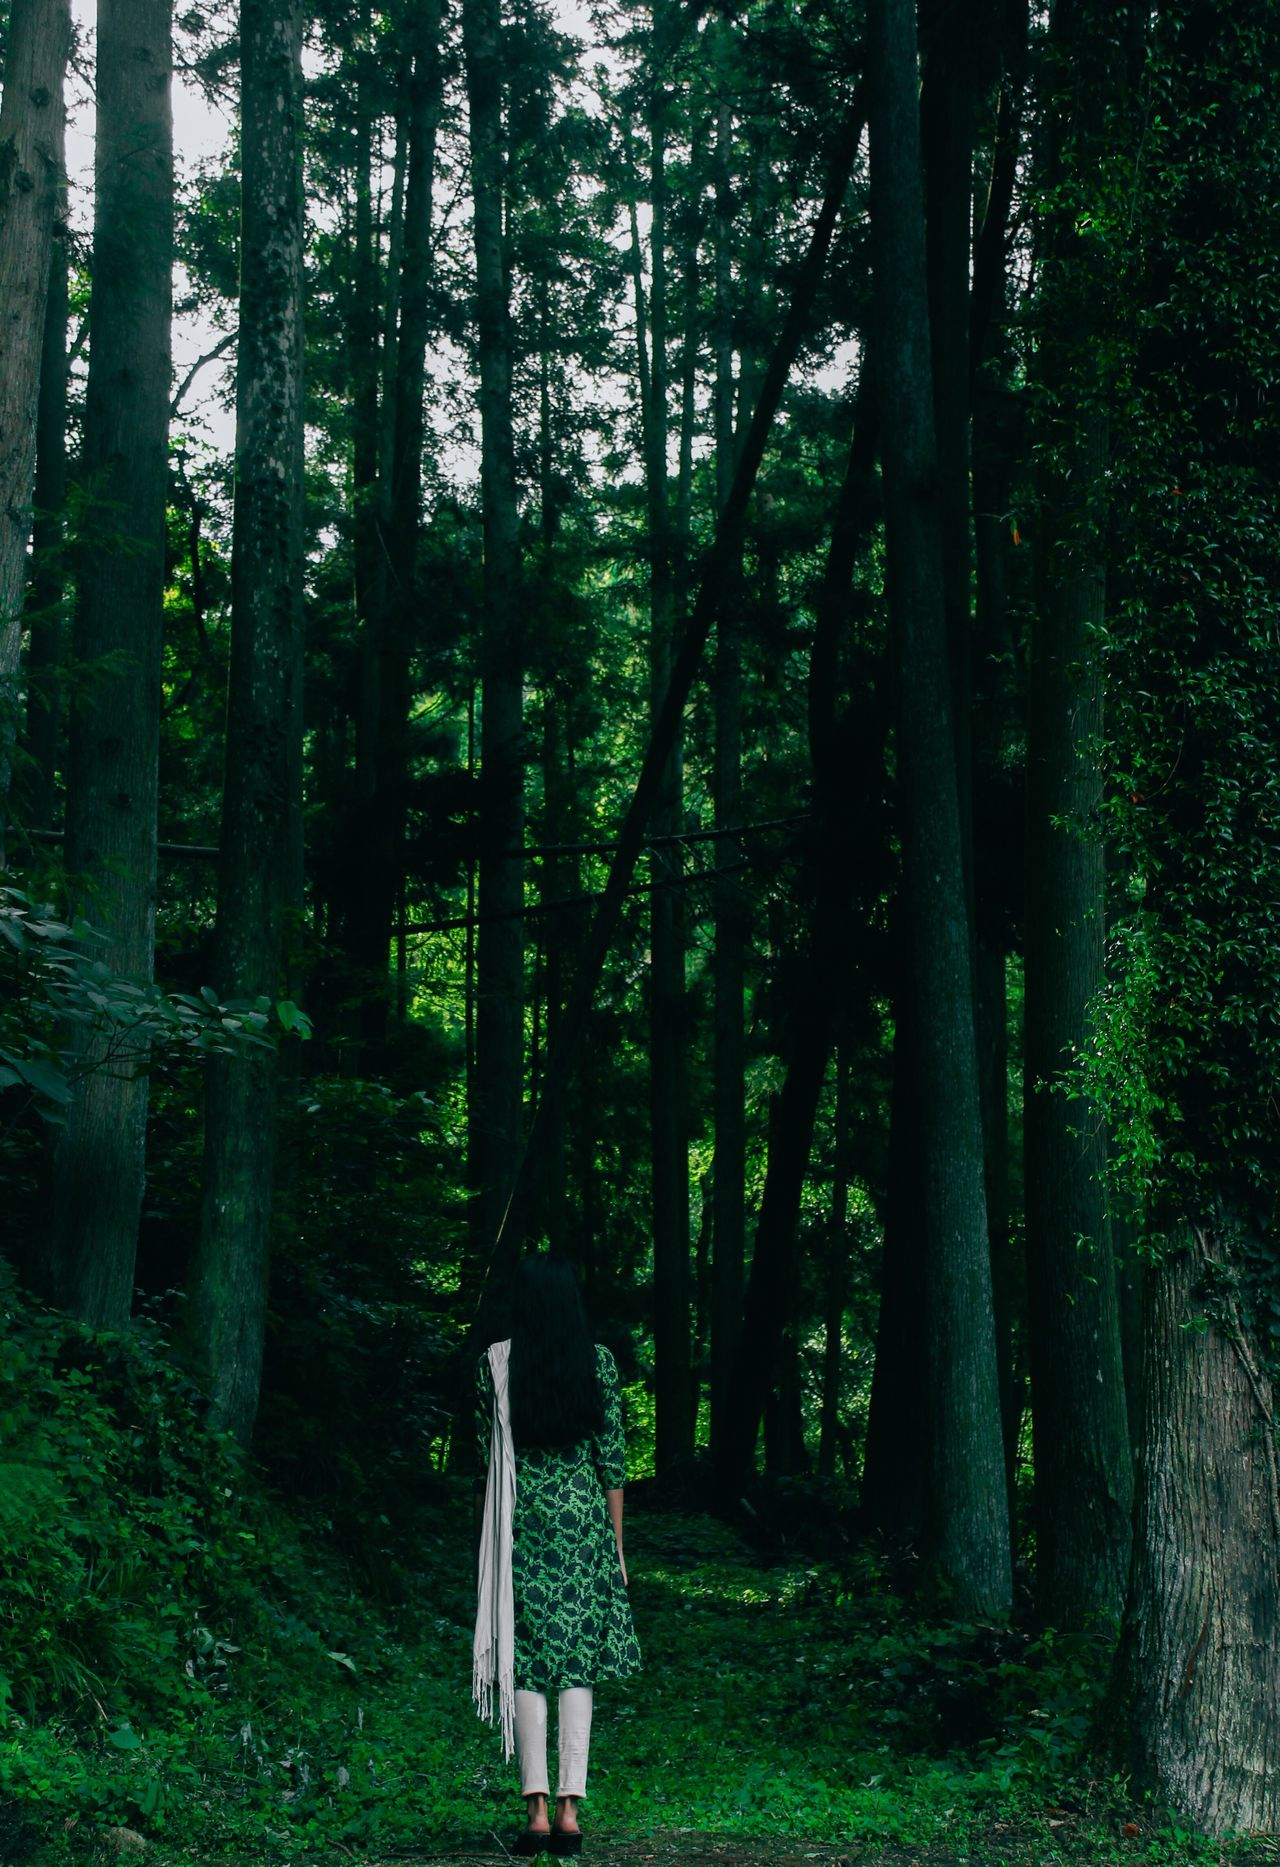 Rear view of woman wearing salwar kameez amidst trees in forest